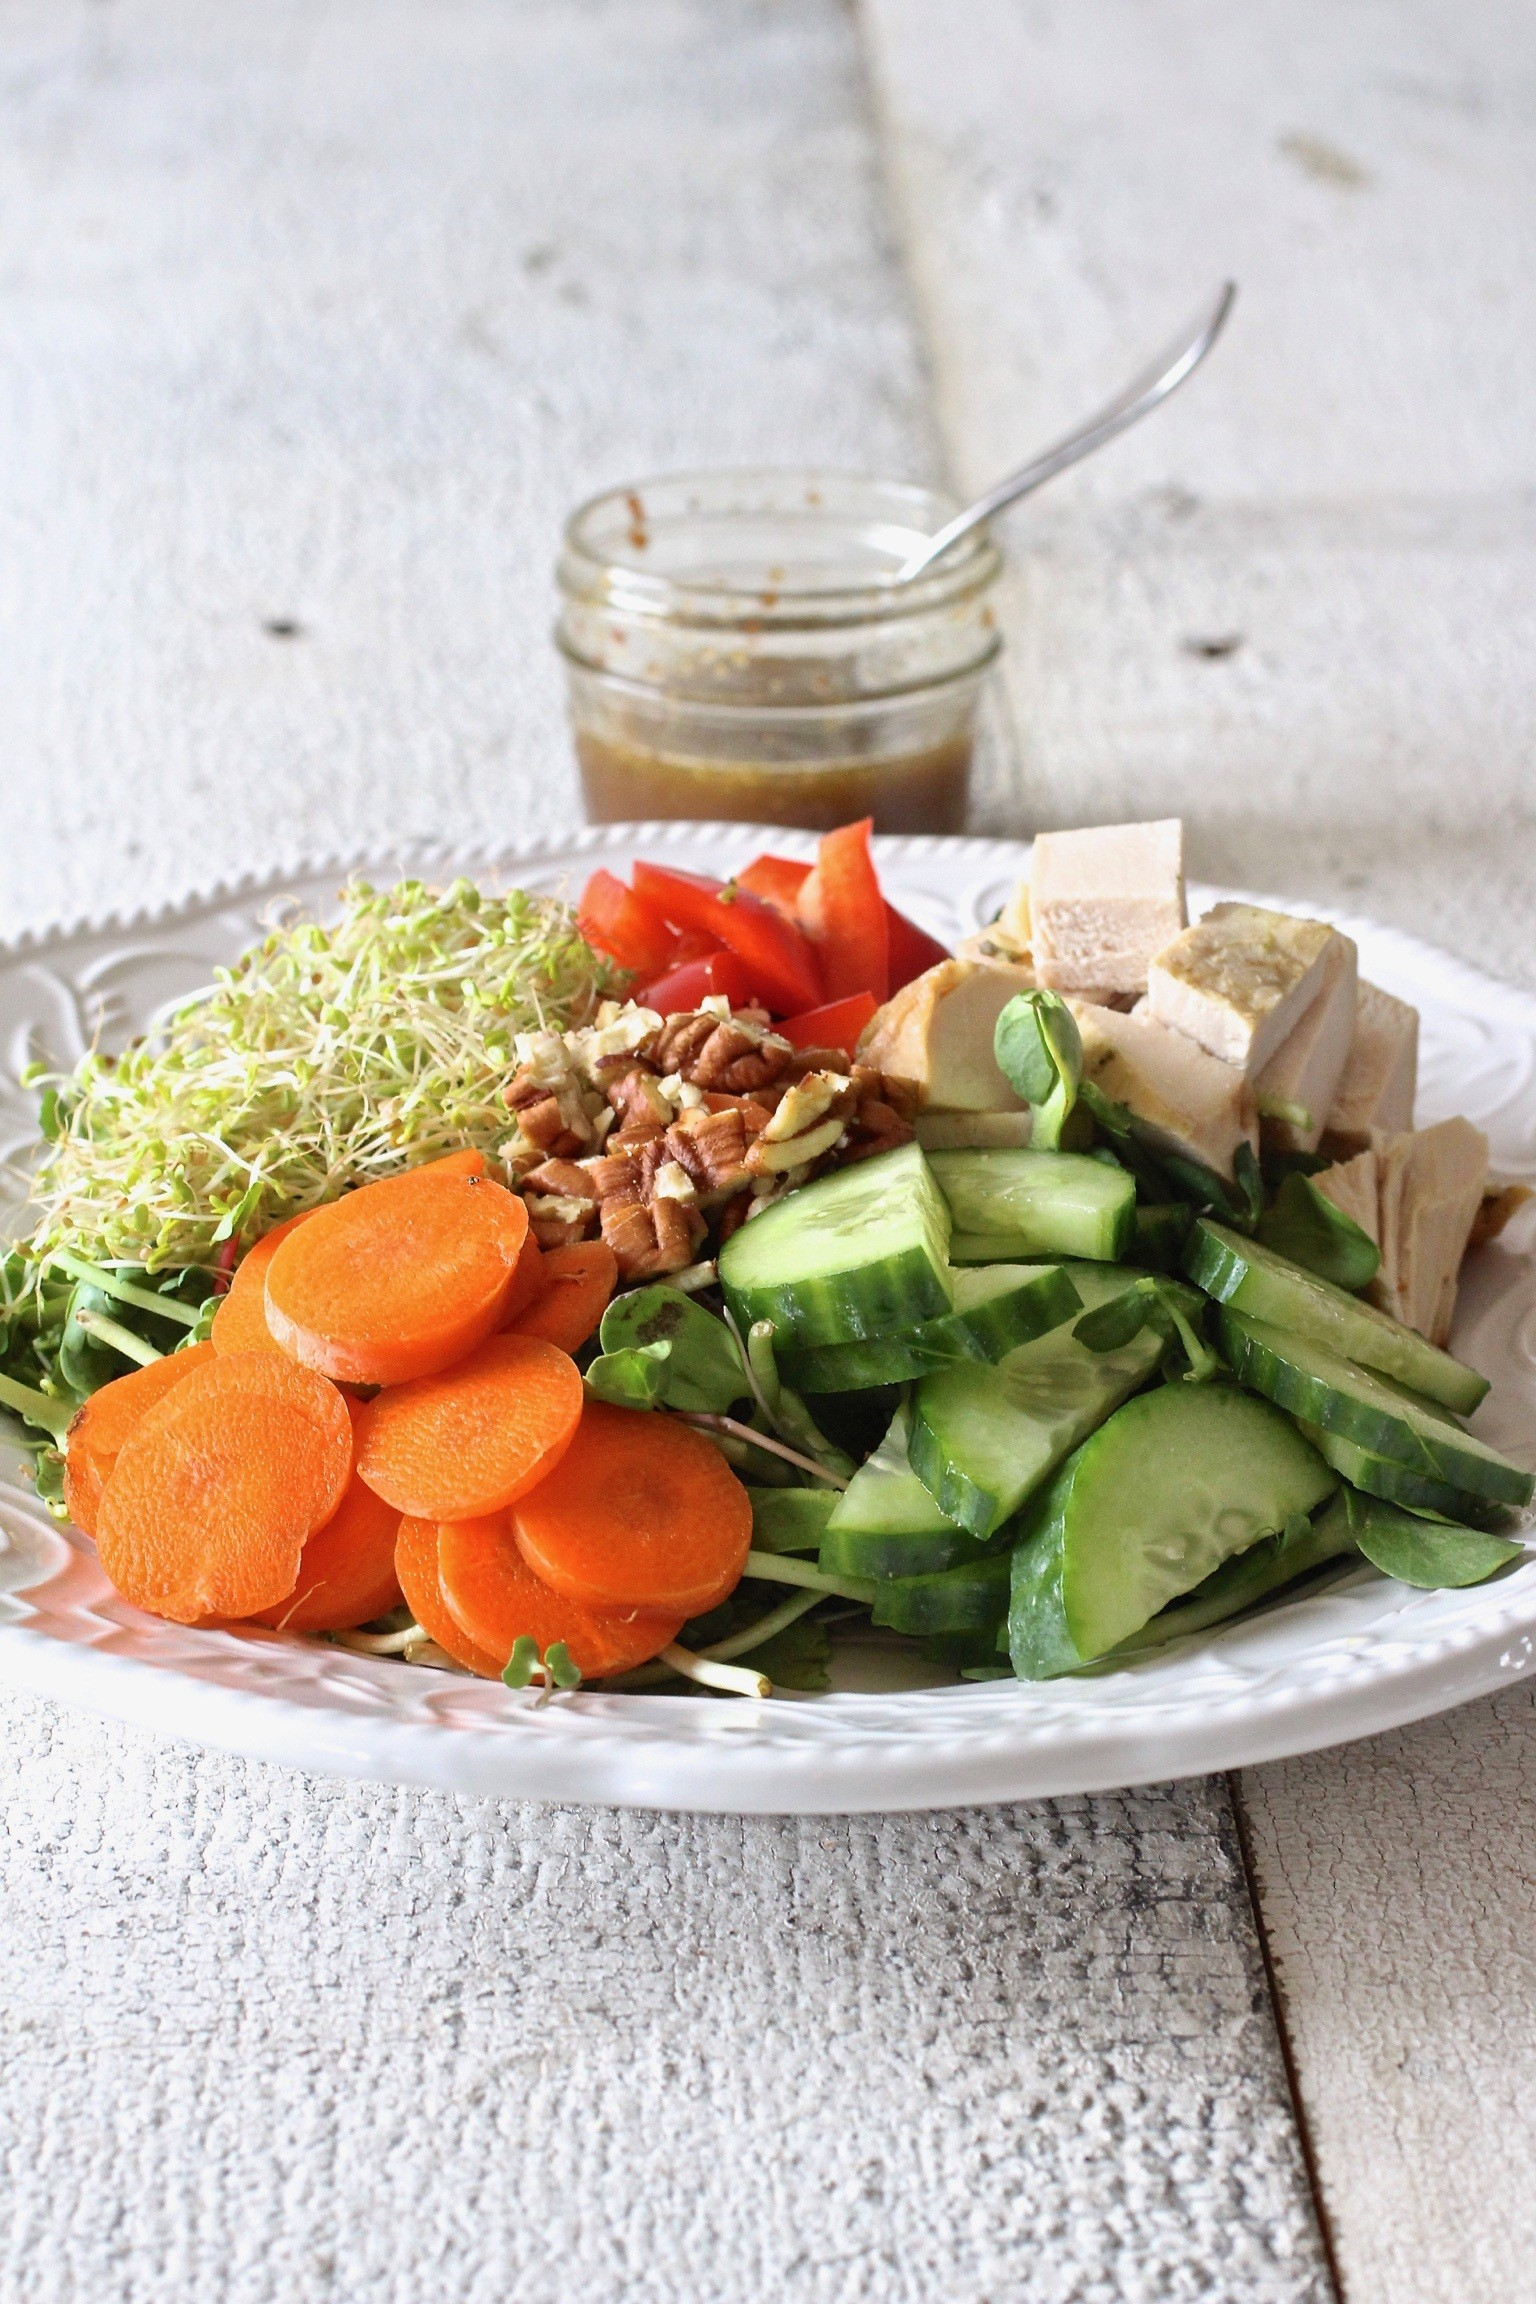 Cobb salad recipe with balsamic vinaigrette - 3